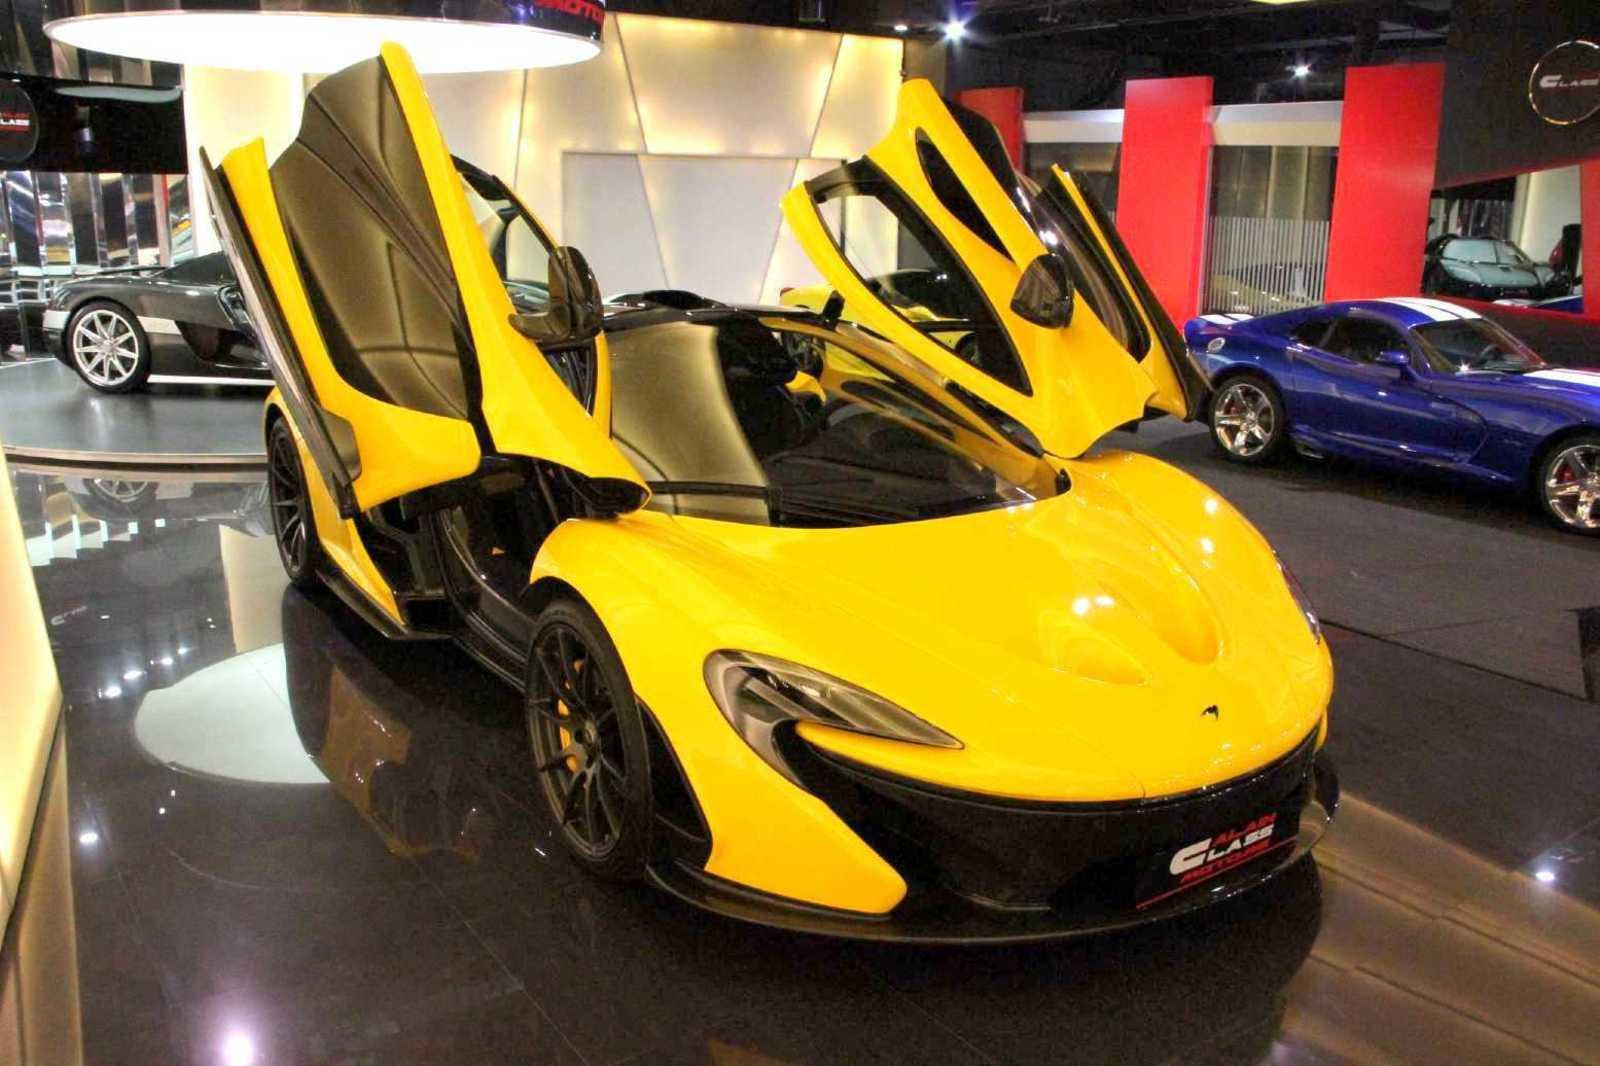 Cheap Cars For Sale >> McLaren P1 For Sale In Dubai For $2 Million News - Top Speed